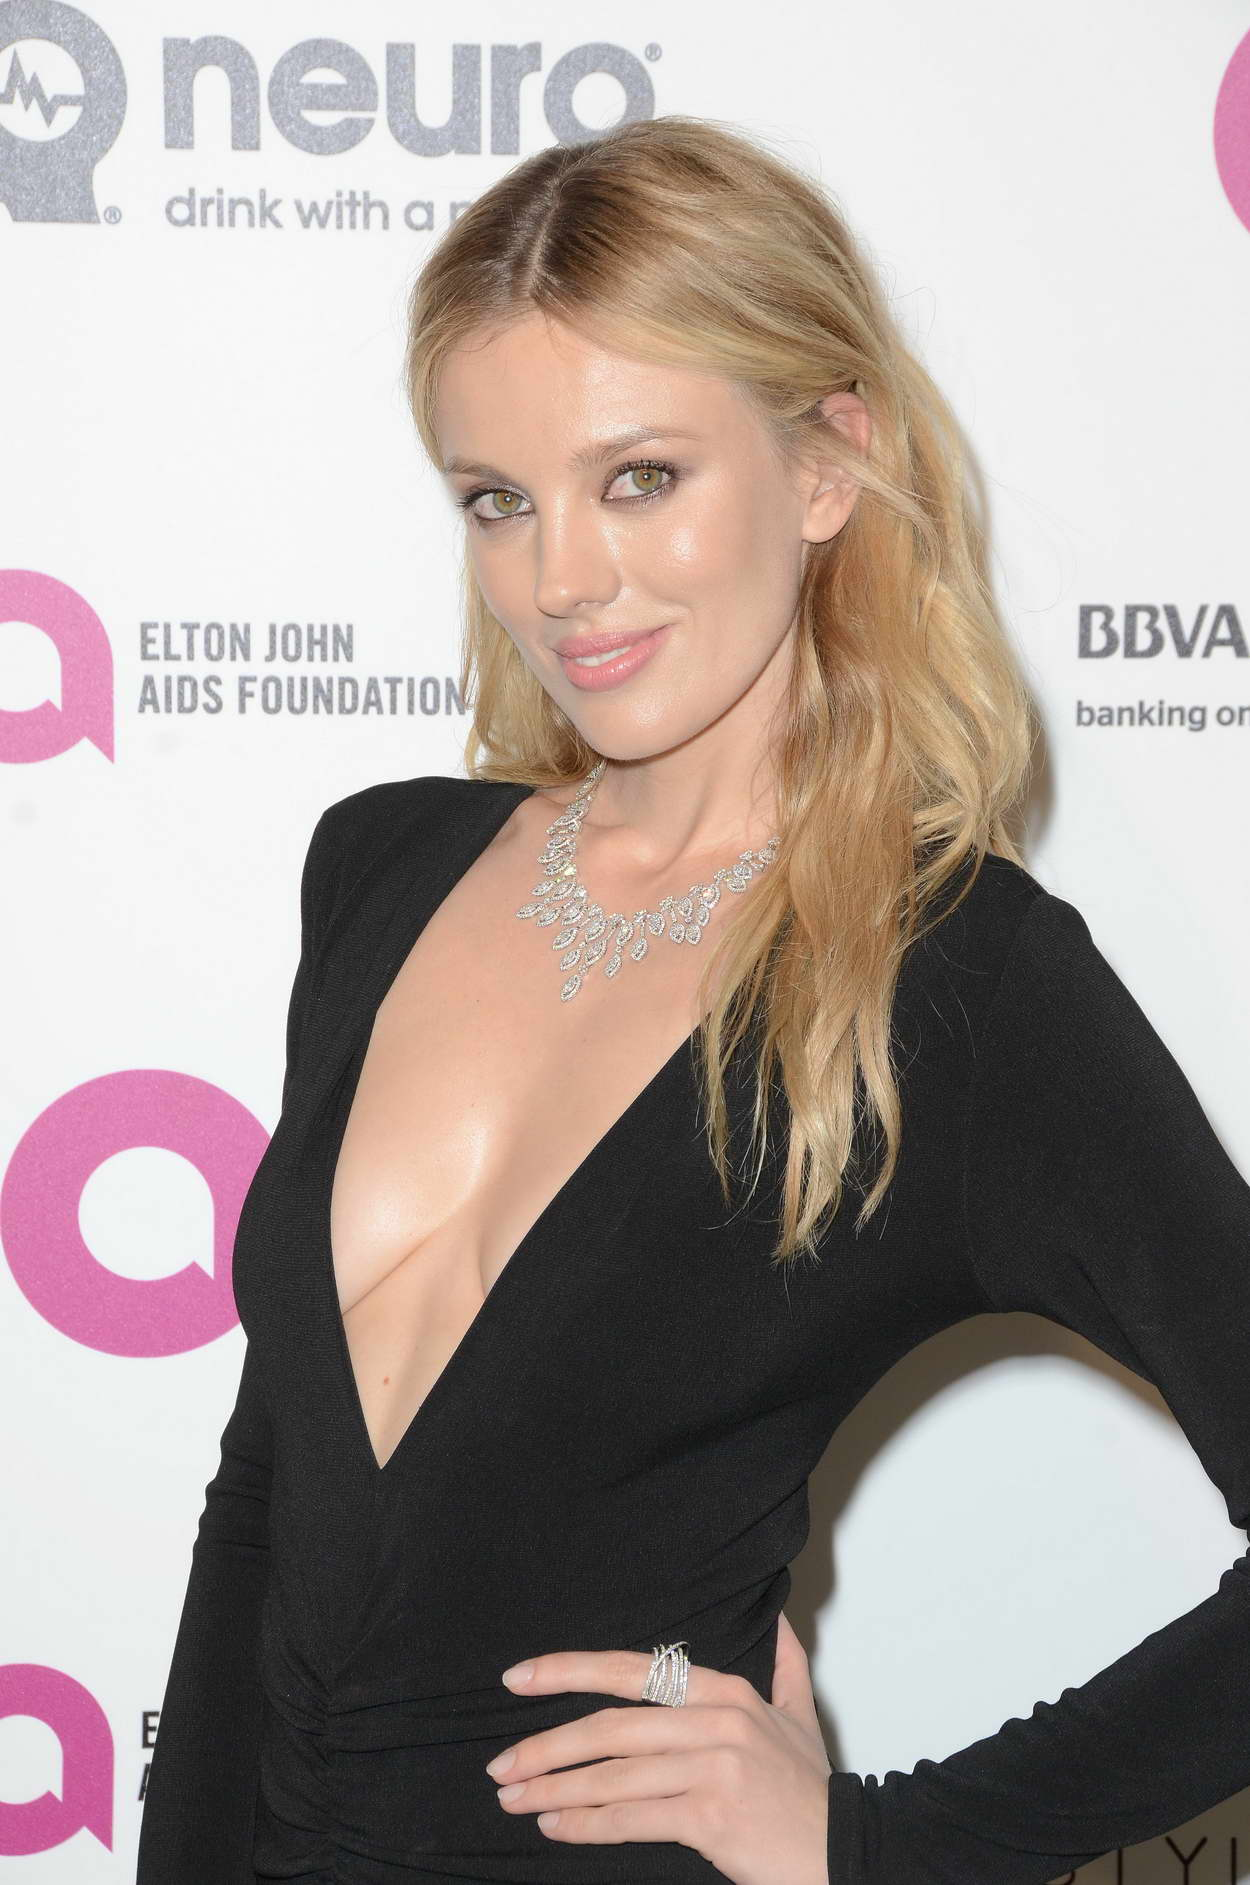 bar paly orchard premiere of dior and i in los angeles bar paly the